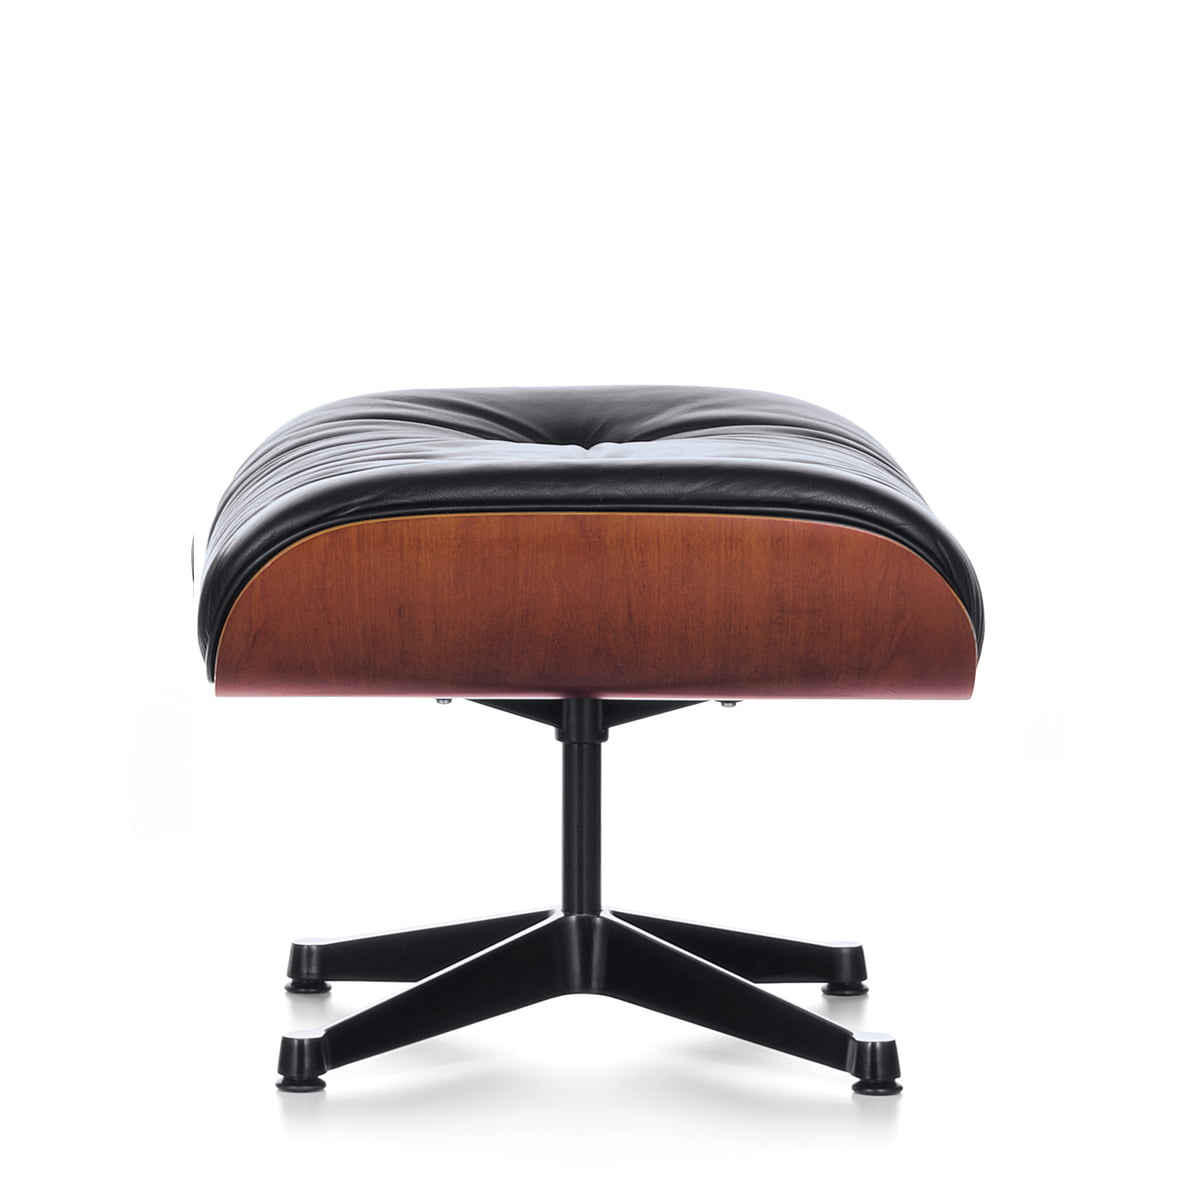 matching ottoman for vitra lounge chair. Black Bedroom Furniture Sets. Home Design Ideas